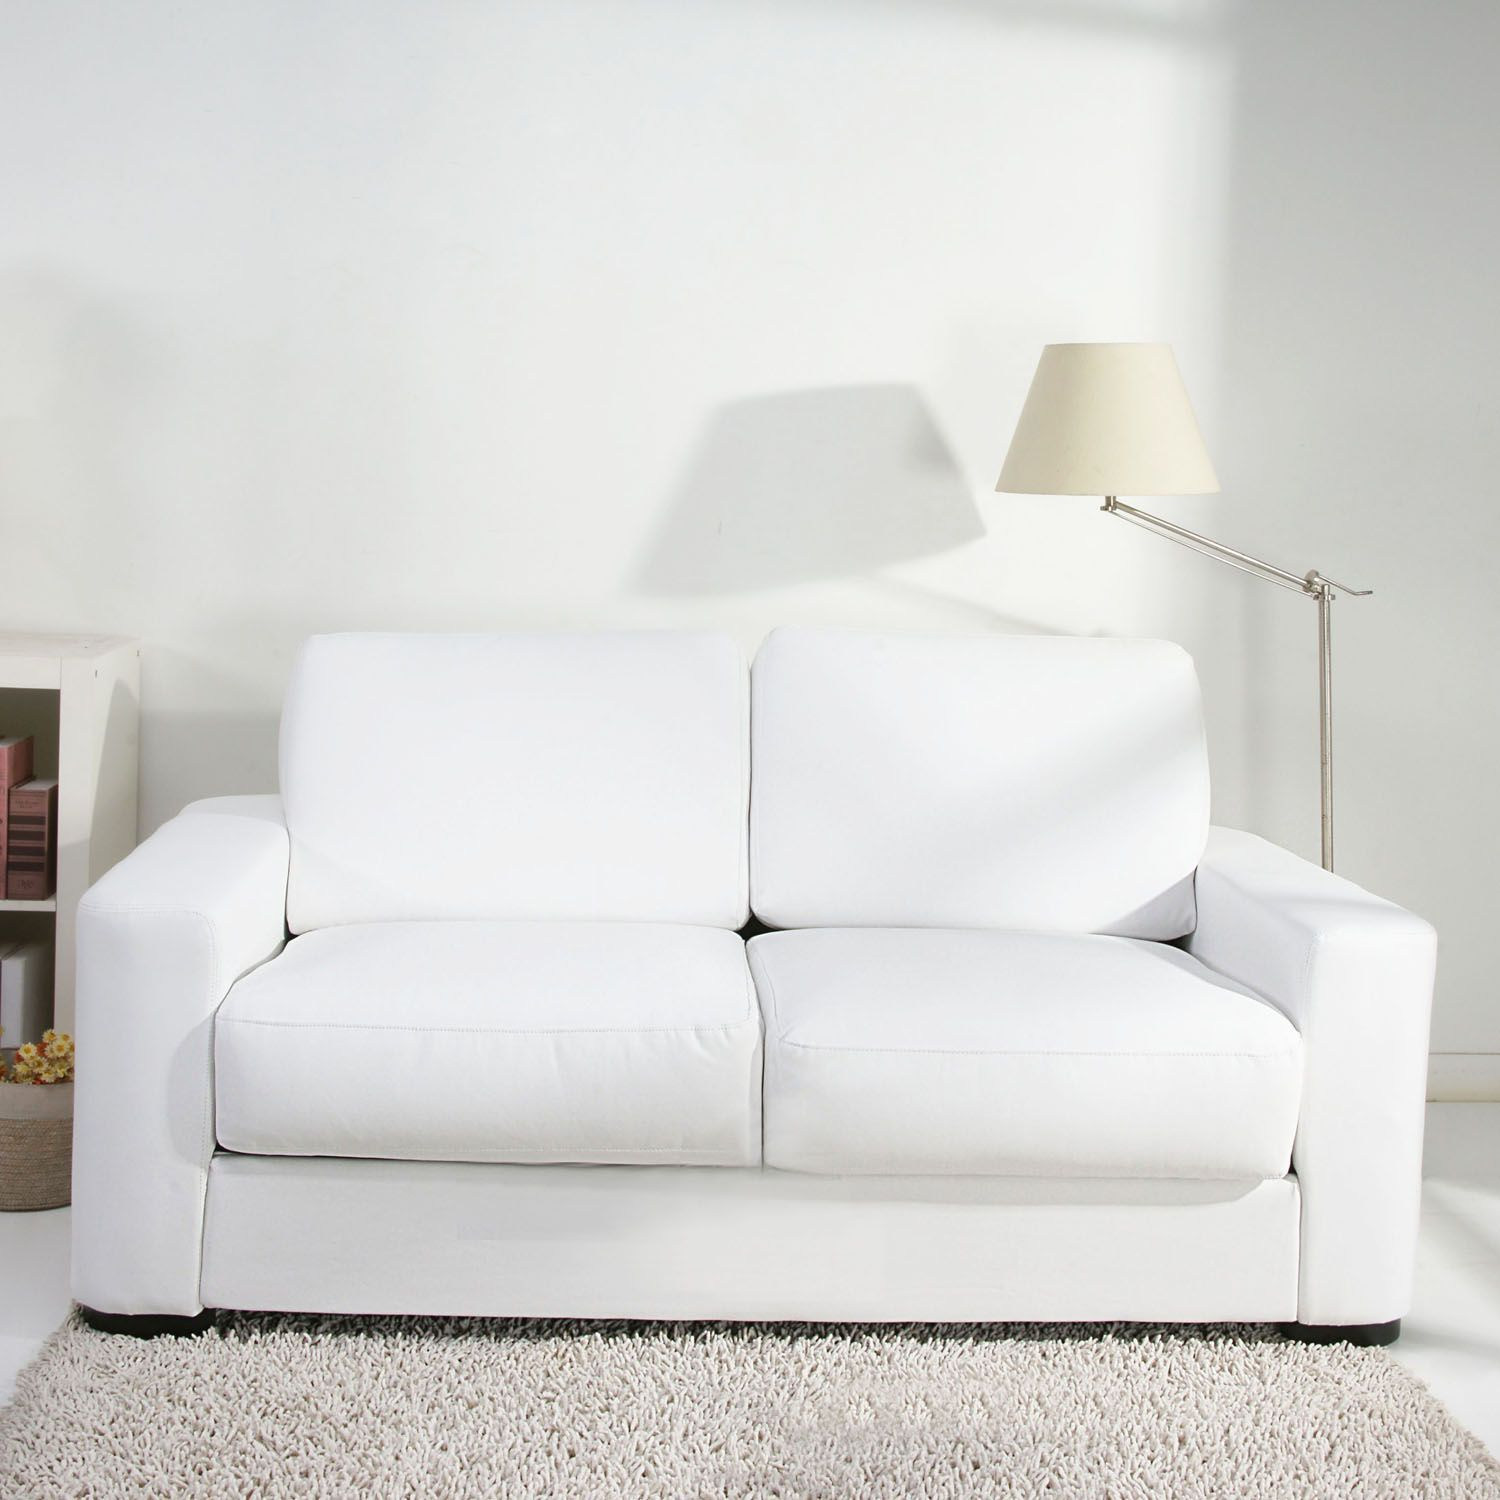 Ideal For A Modern And Friendly Atmosphere Sofa Beds In